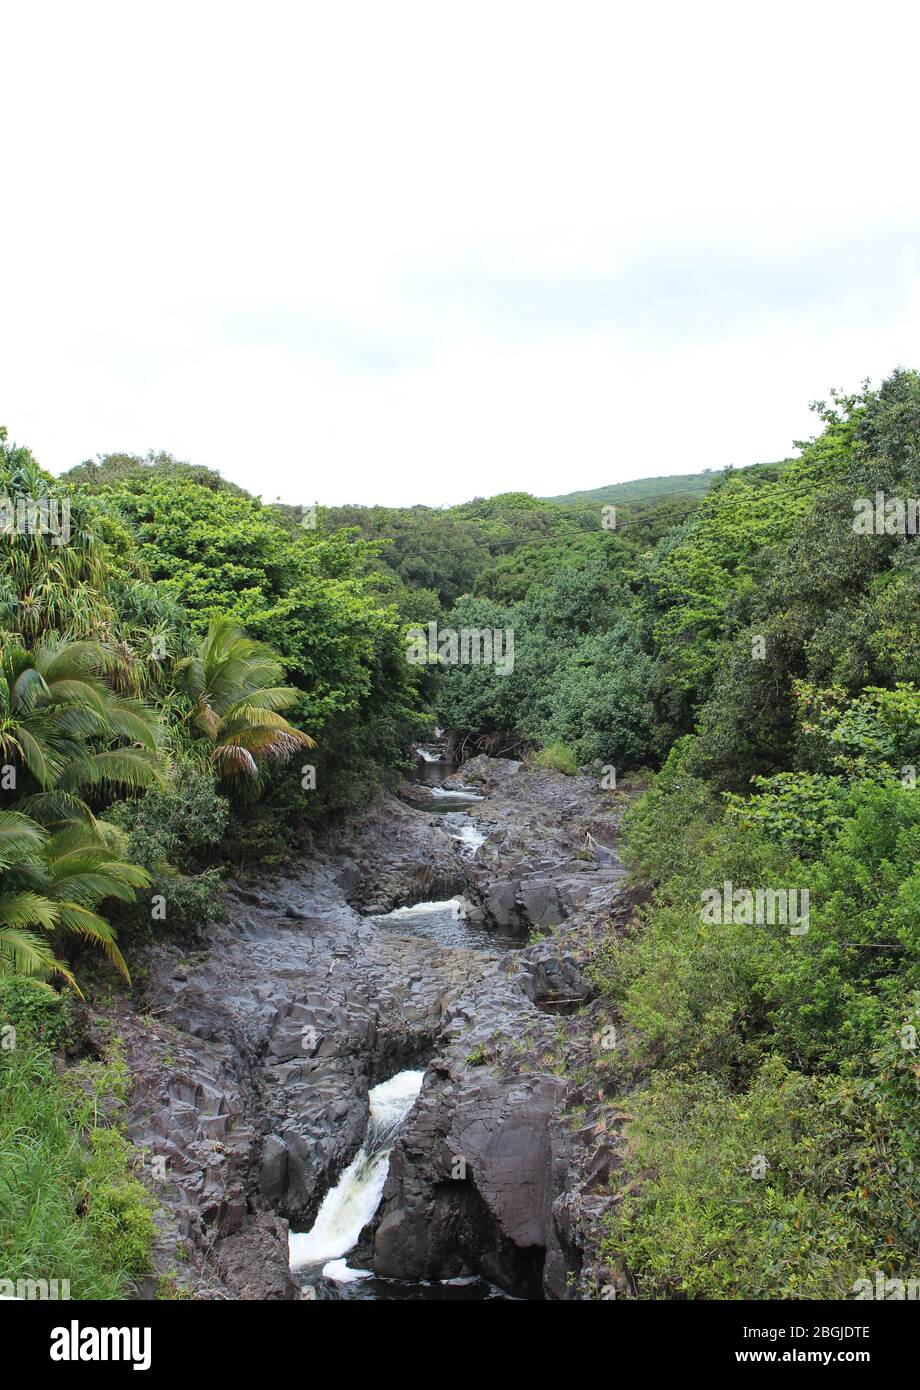 The Seven Sacred Pools, Oheo Gulch, formed by the Palikea Stream flowing through volcanic rock surrounded by rainforest in the Kipahulu District, Maui Stock Photo